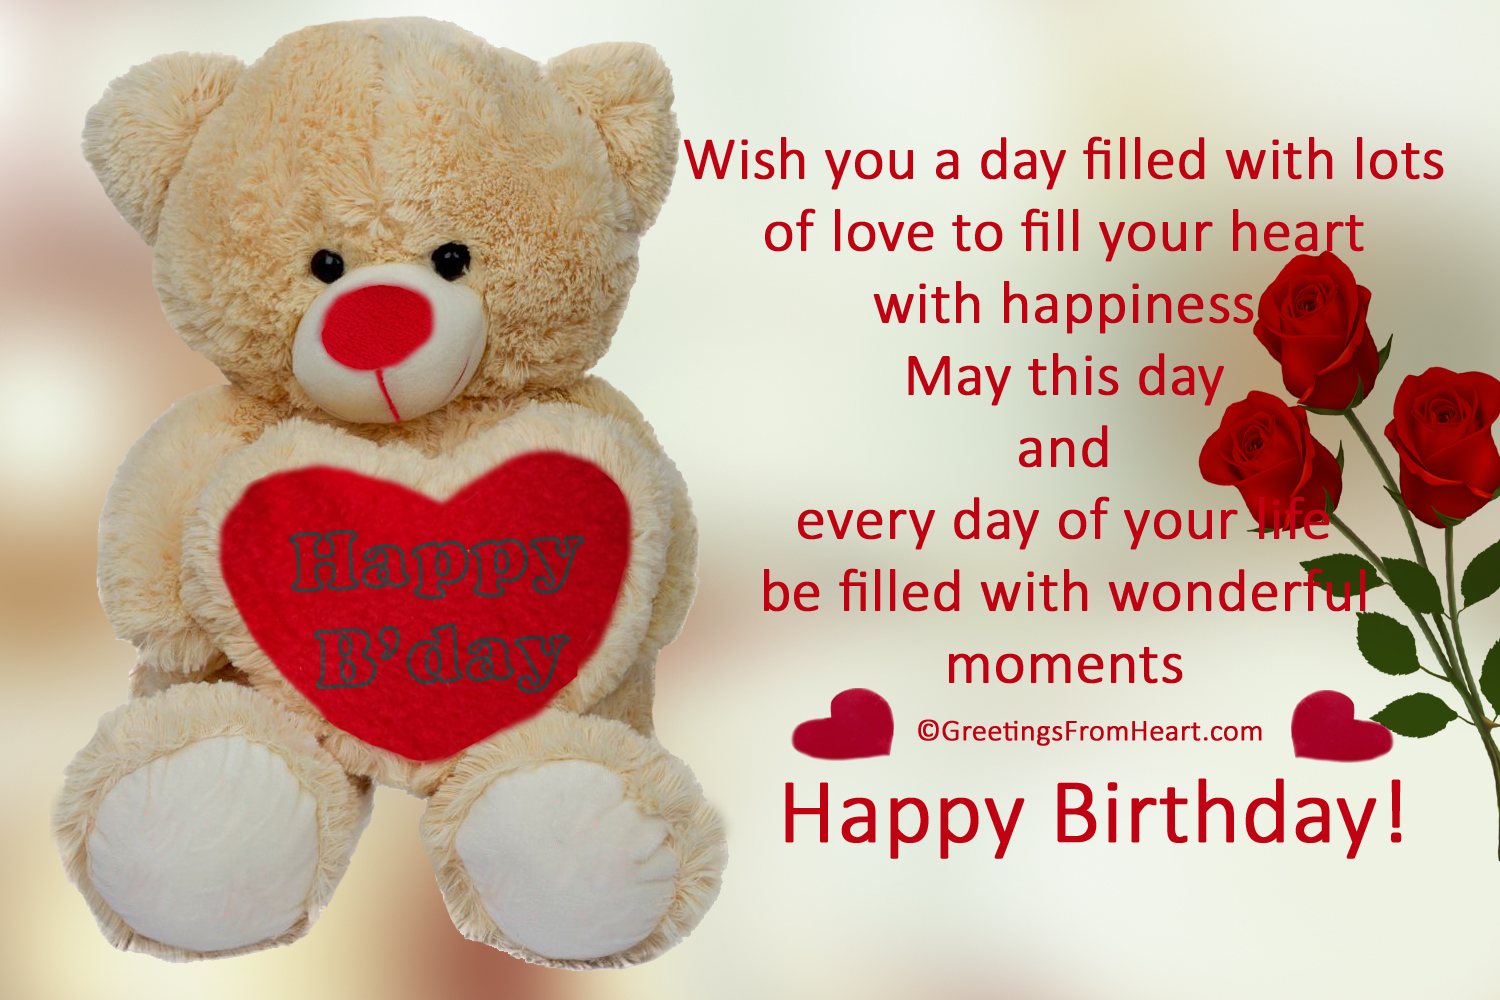 Cute Birthday Greetings Cute Birthday Wishes Cute Birthday Images